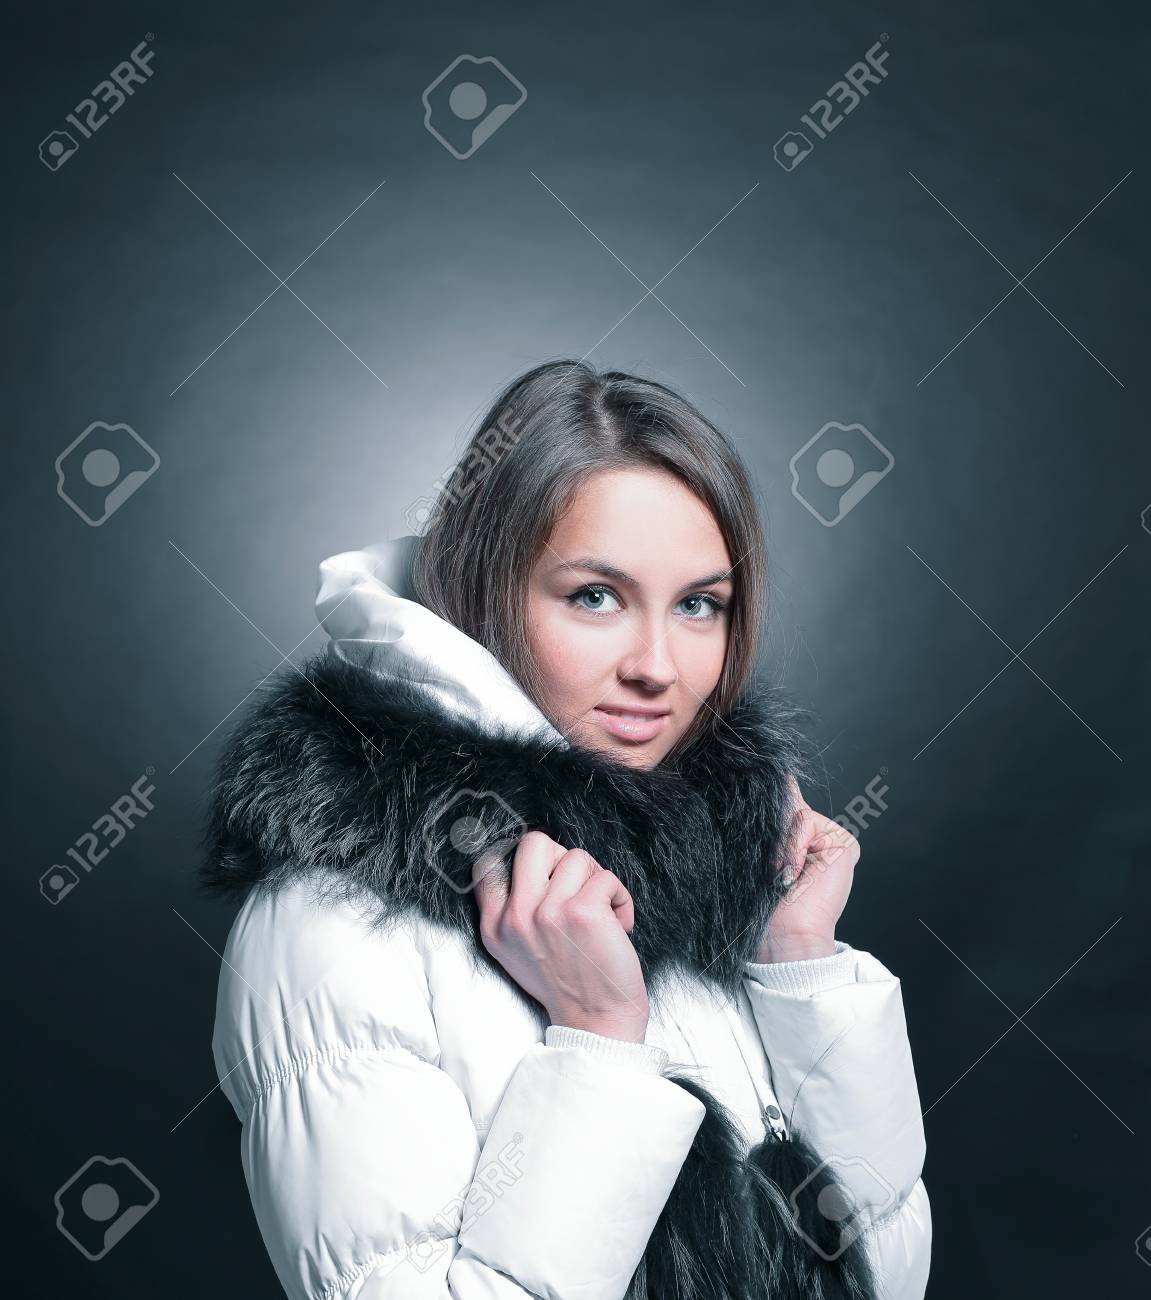 6cee59ad4af46 portrait of beautiful young woman in winter jacket Stock Photo - 97656548